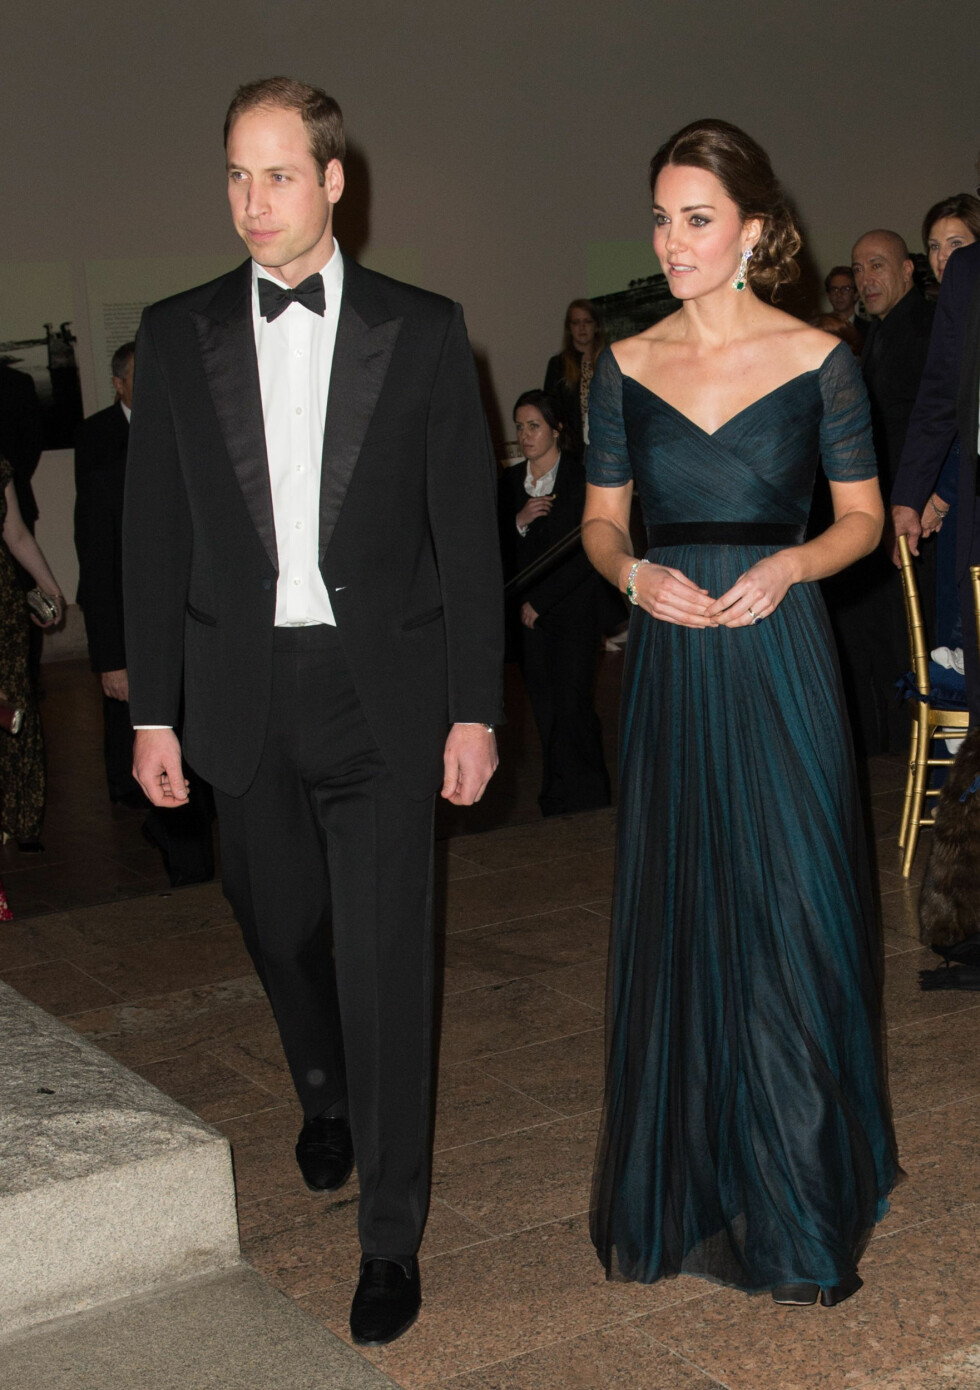 Prince William and Catherine Duchess of Cambridge Prince William and Catherine Duchess of Cambridge at the Metropolitan Museum of Art for the St Andrews 600th Anniversary Ball Foto: REX/Tim Rooke/All Over Press